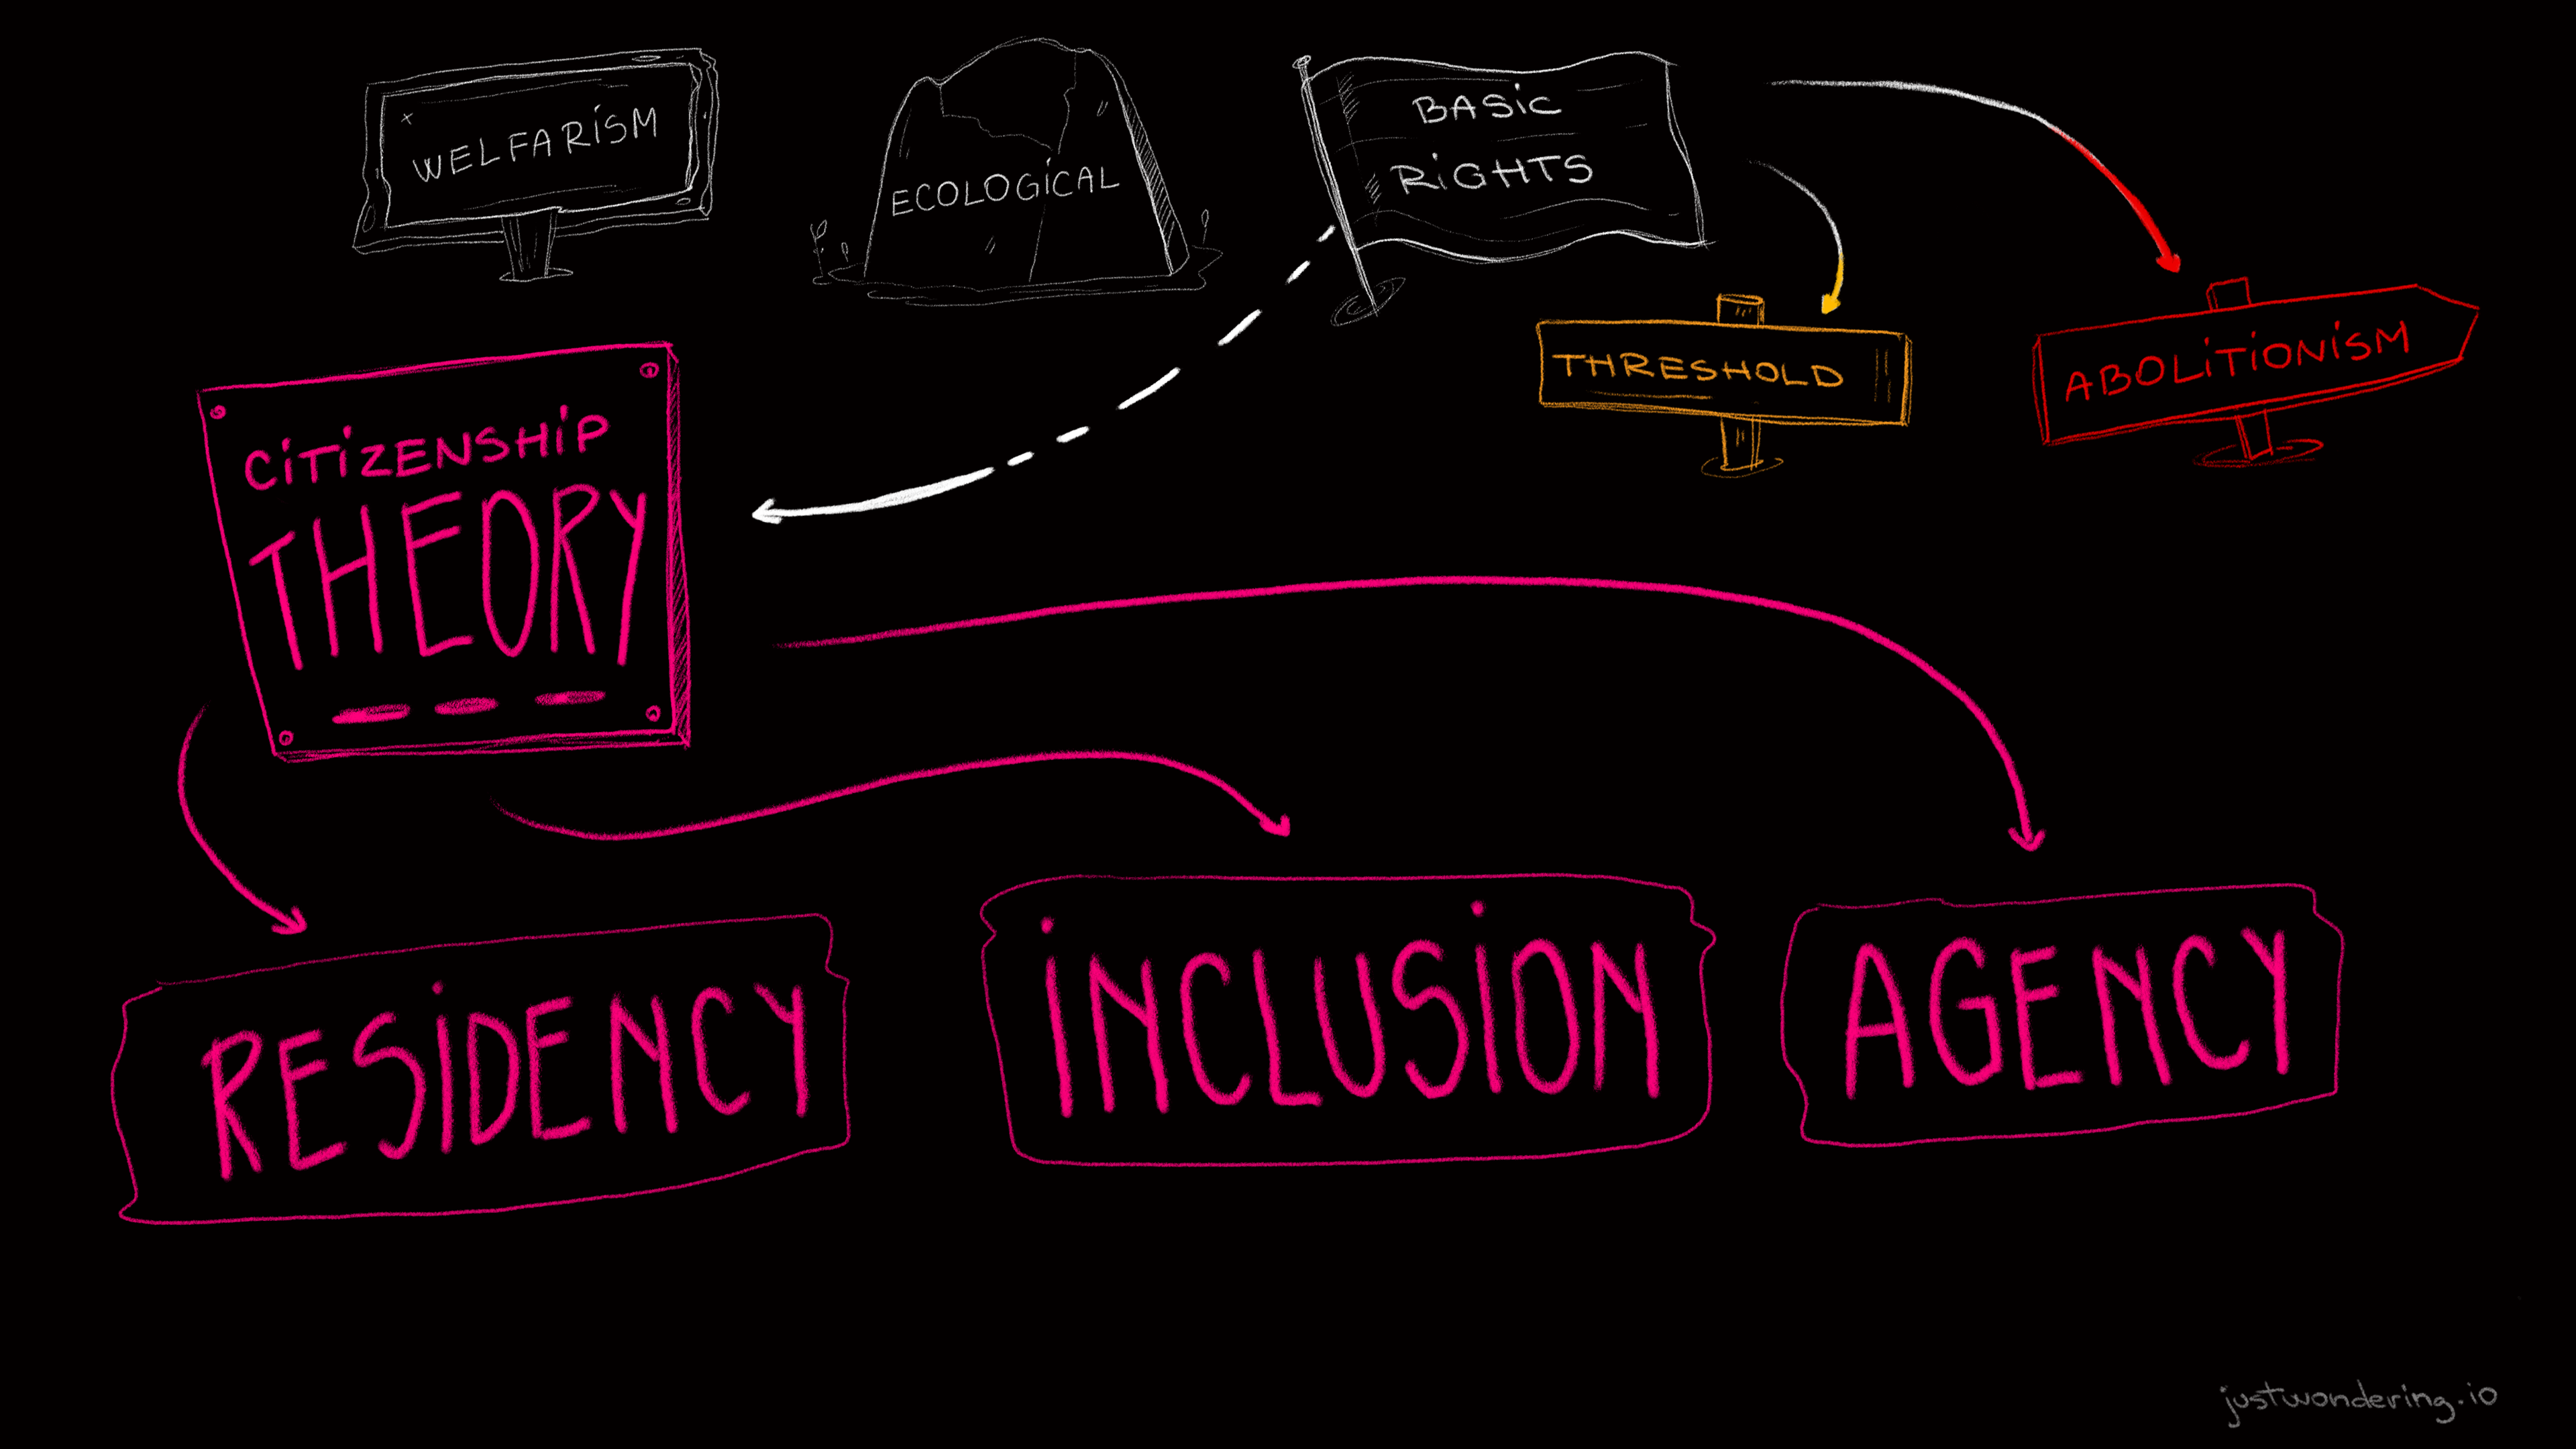 Residency, inclusion, and agency - after Sue Donaldson & Will Kymlicka